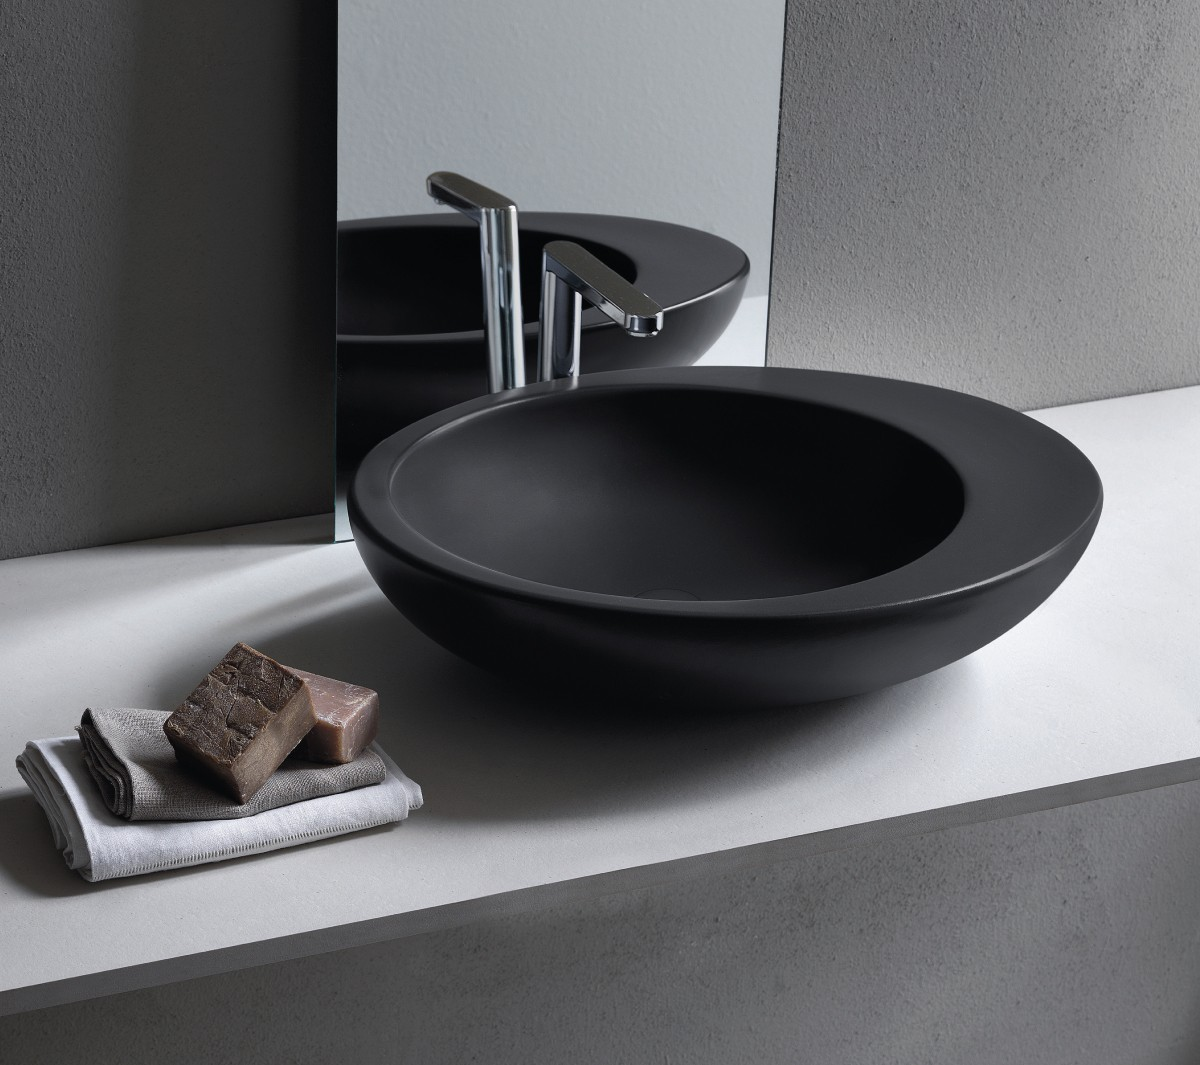 Cielo Lavabi Le Giare Design Washbasin By Ceramica Cielo Luxury